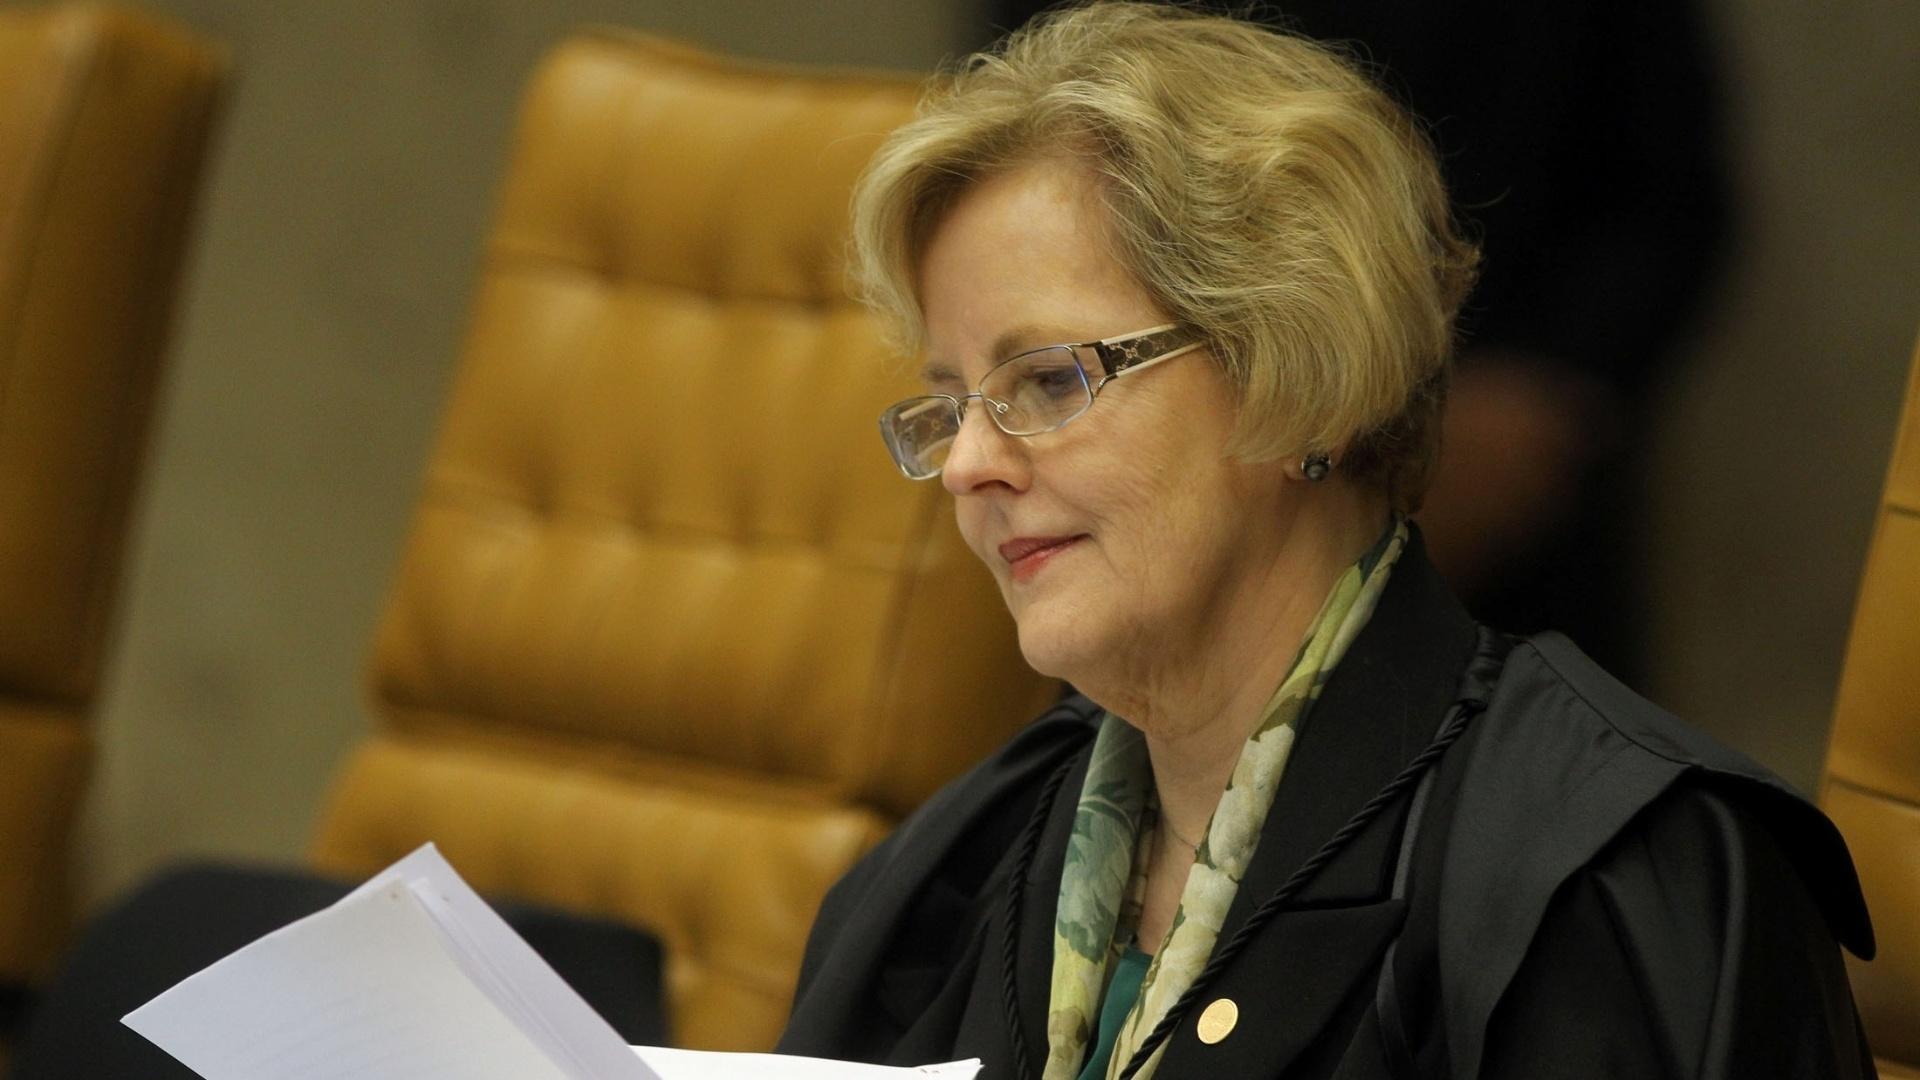 26.nov.2012 - A ministra do STF Rosa Weber participa de sesso do julgamento do mensalo, em Braslia